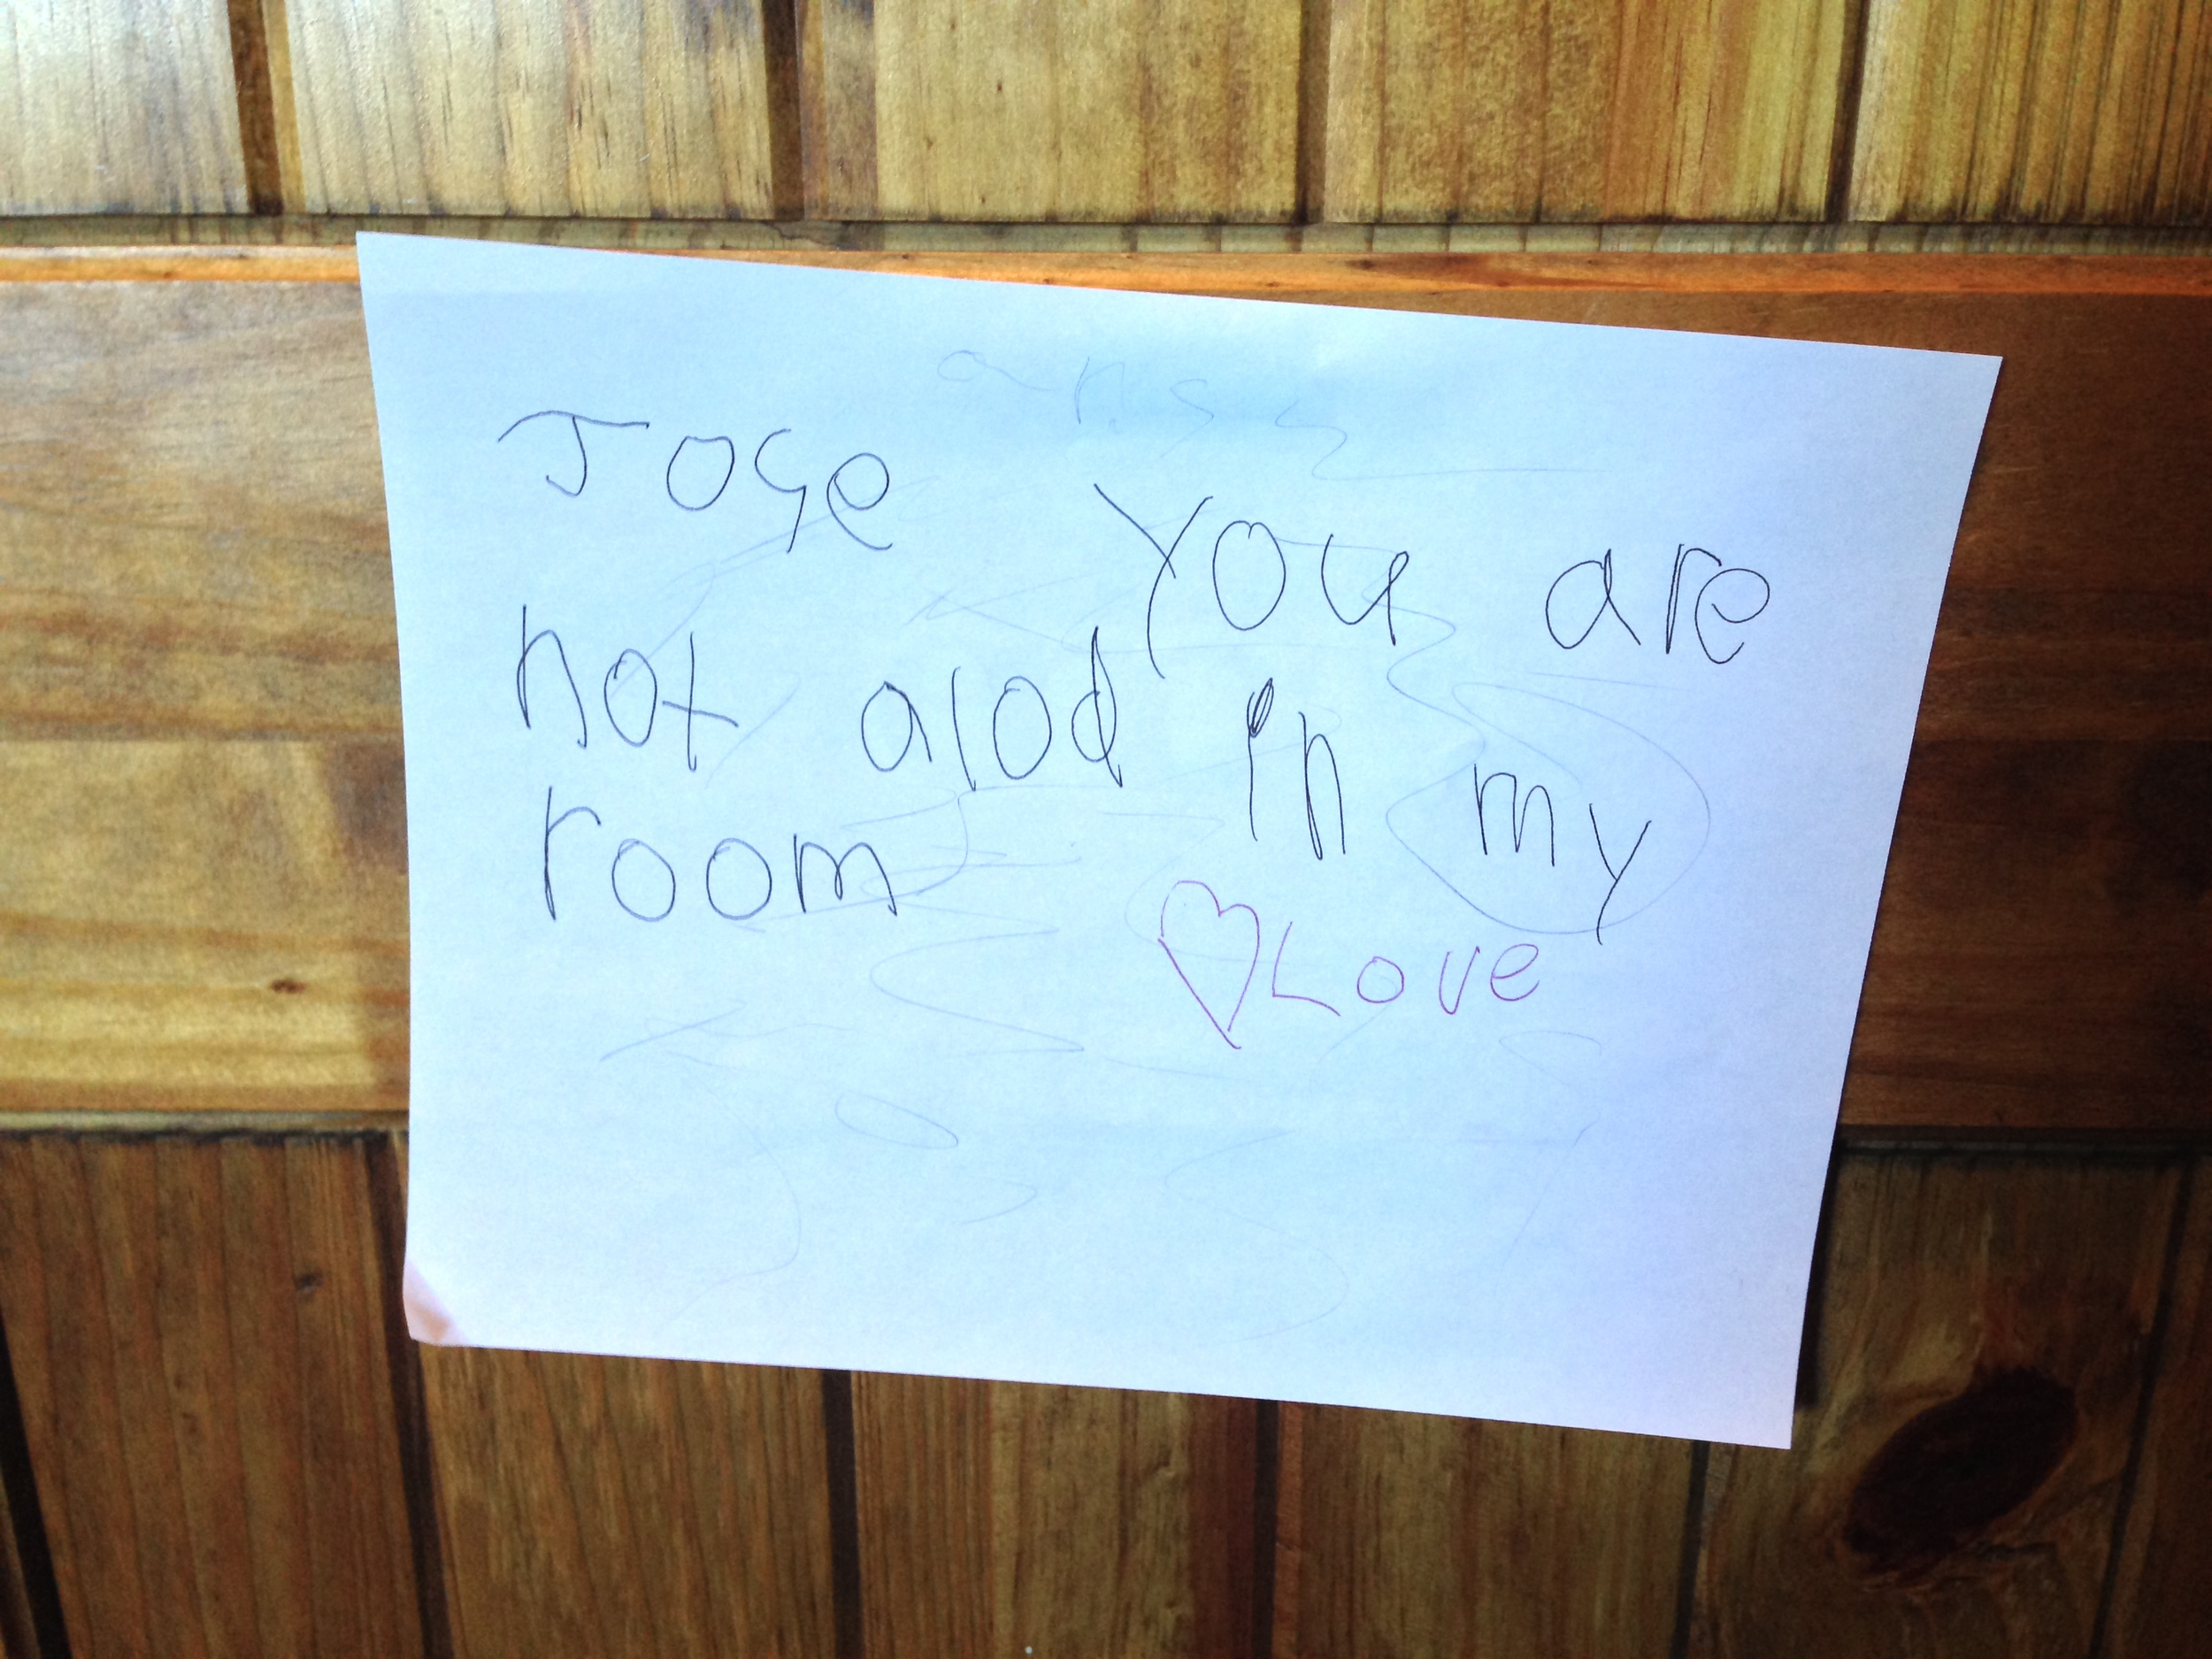 This note was found at a shoot in Truckee. We don't have anyone on our crew with the name Jose so we are guessing this is an old note from a previous shoot. Anyway, glad to know the client is full of love.